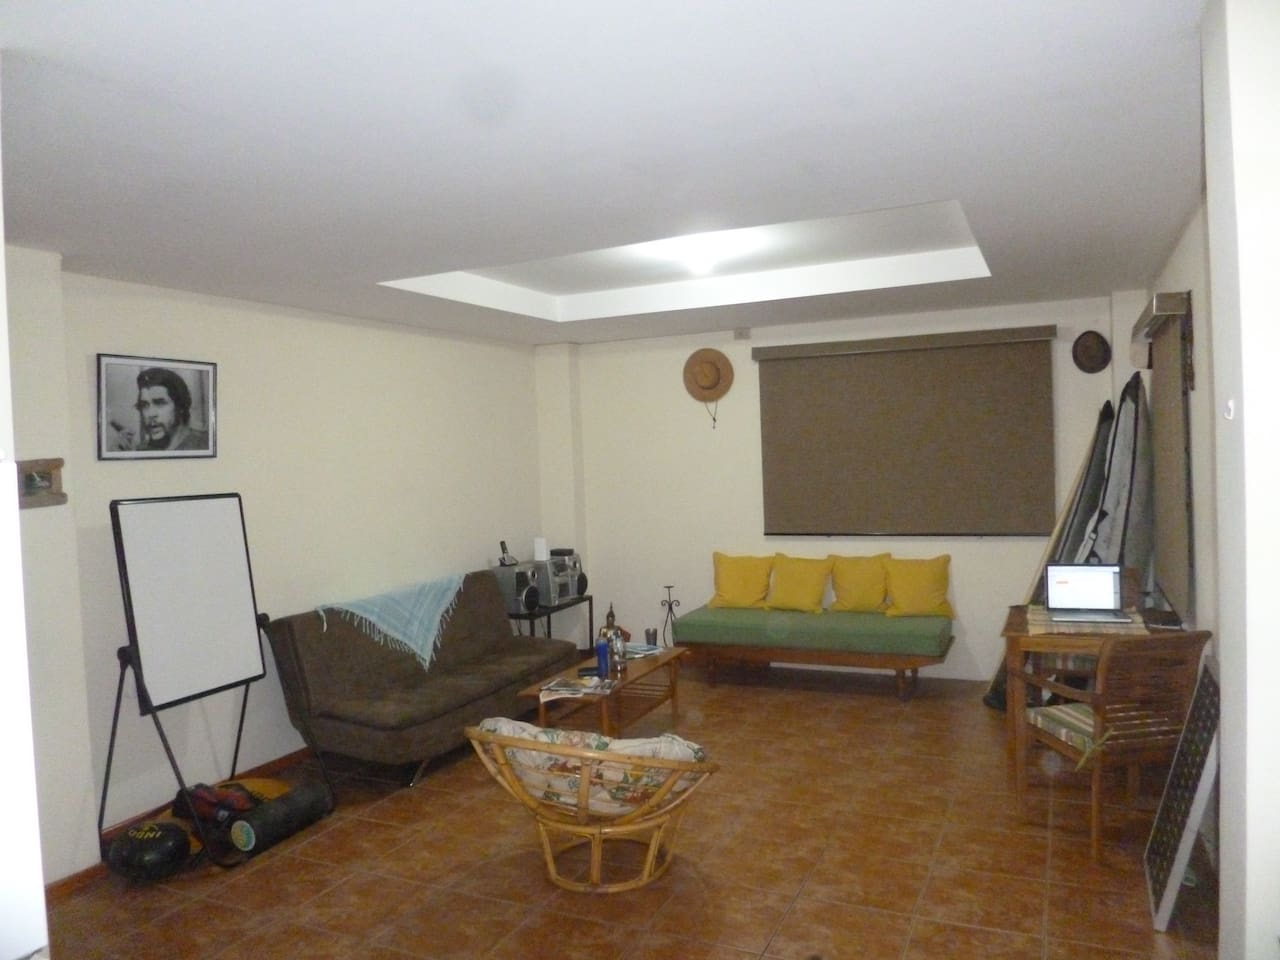 Spacious Aartment with A/C, free cell phone with Trini SIM, yoga matt, Jump rope, indo board, boxing glooves, stretchy band, ab wheel